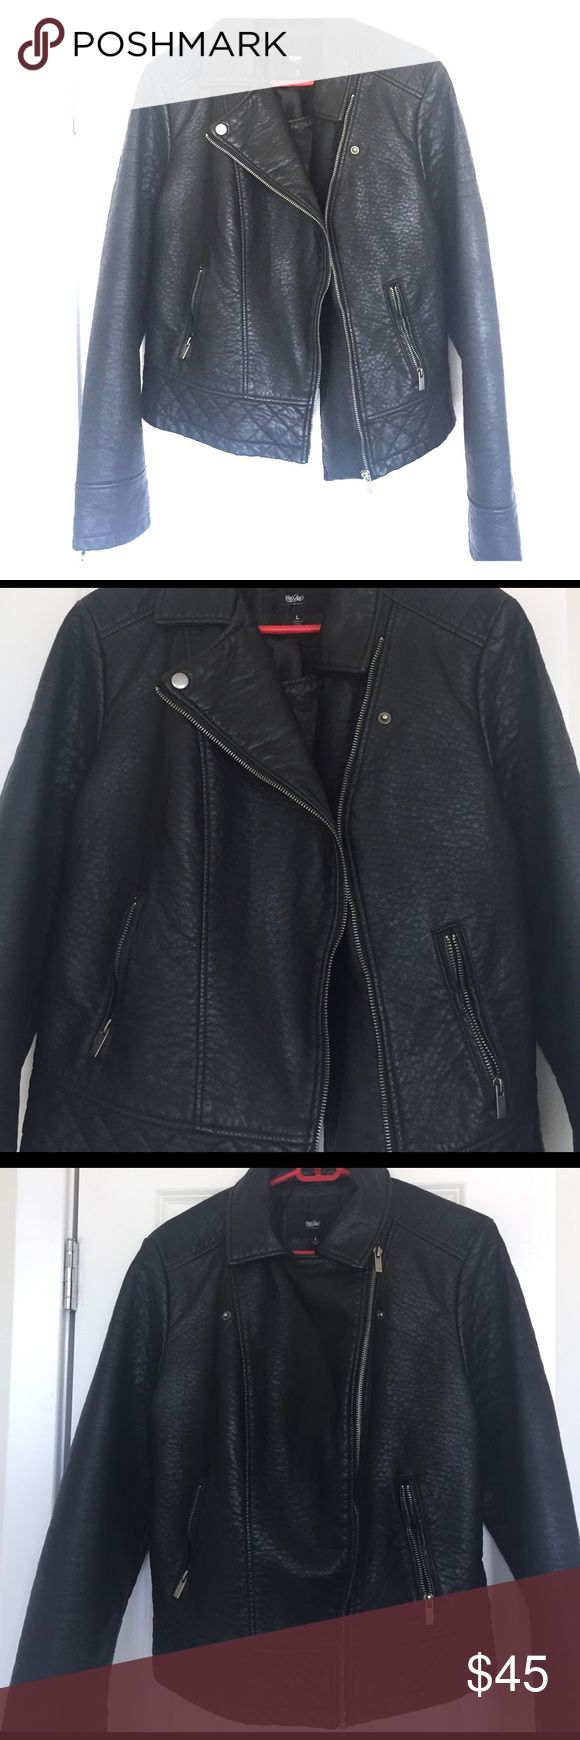 Women's Leather Jacket Women's Black Faux Leather Jacket ... two zipper pockets in front ... silver zippers and snaps ... quilted detailed around the bottom and on the shoulders ... worn only once Mossimo Supply Co Jackets & Coats Utility Jackets